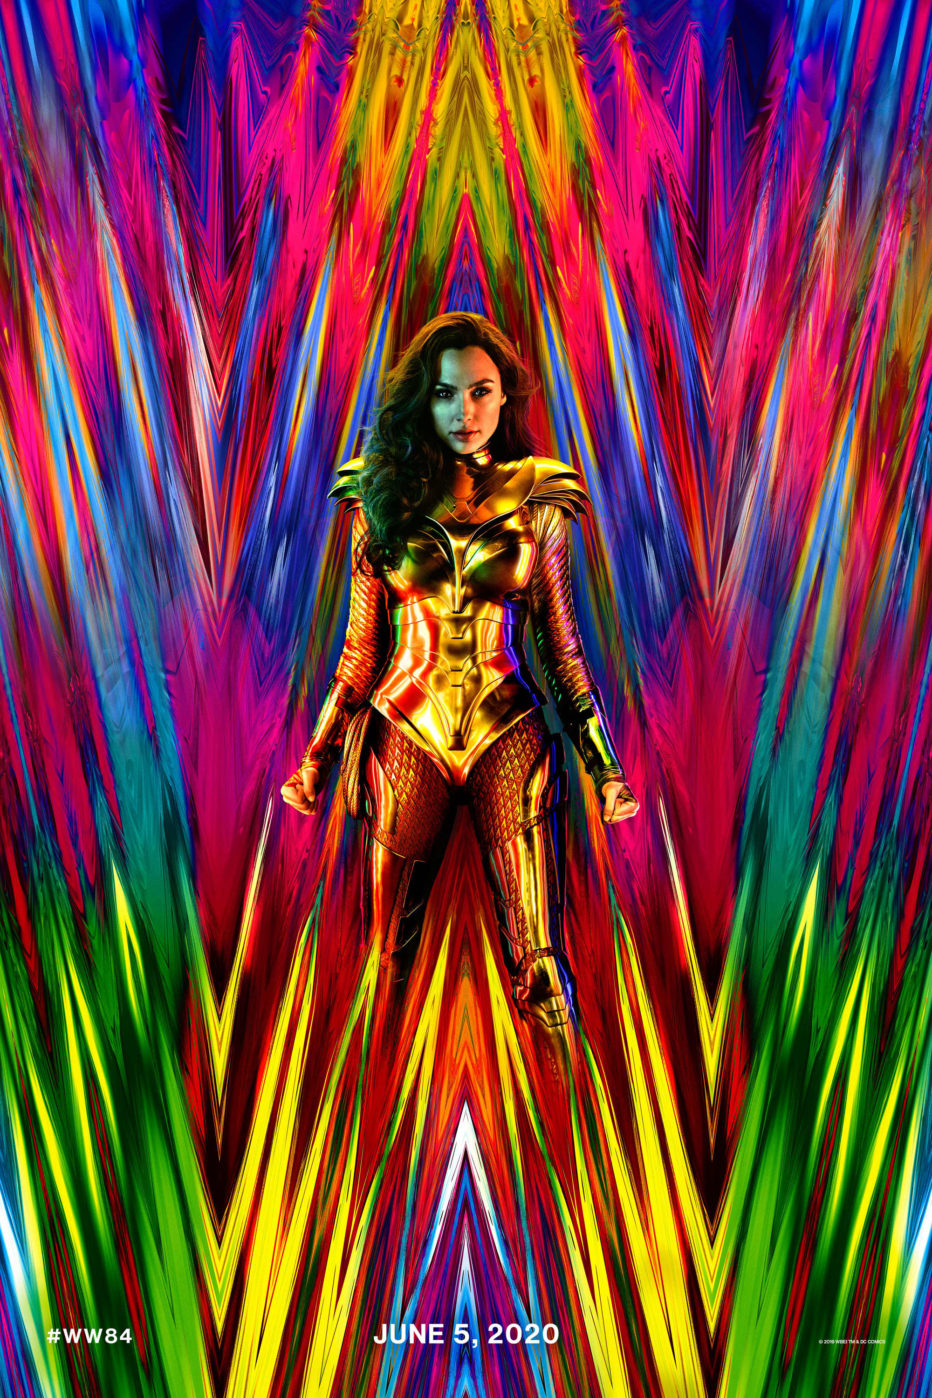 Trailer de Wonder Woman 1984